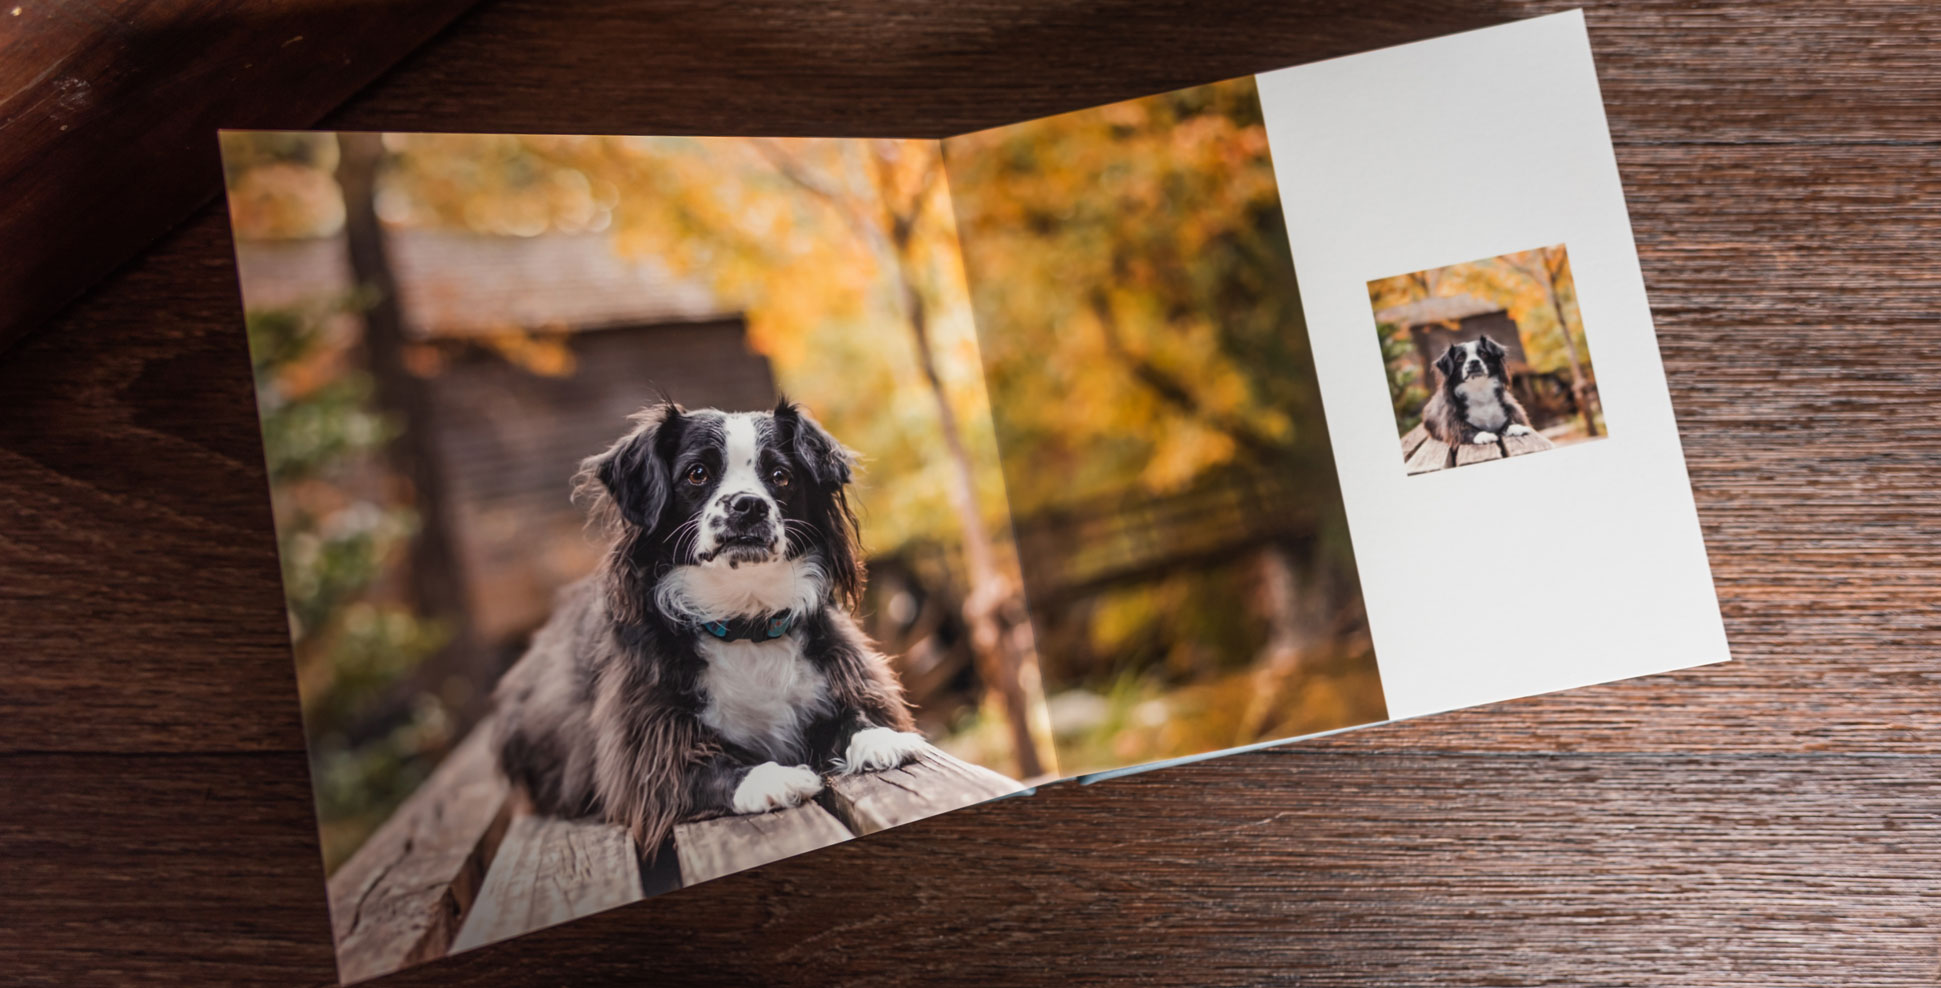 An album of your dog's photography session with Atlanta pet photographer CM Bryson tells the story of your dog's photo shoot.